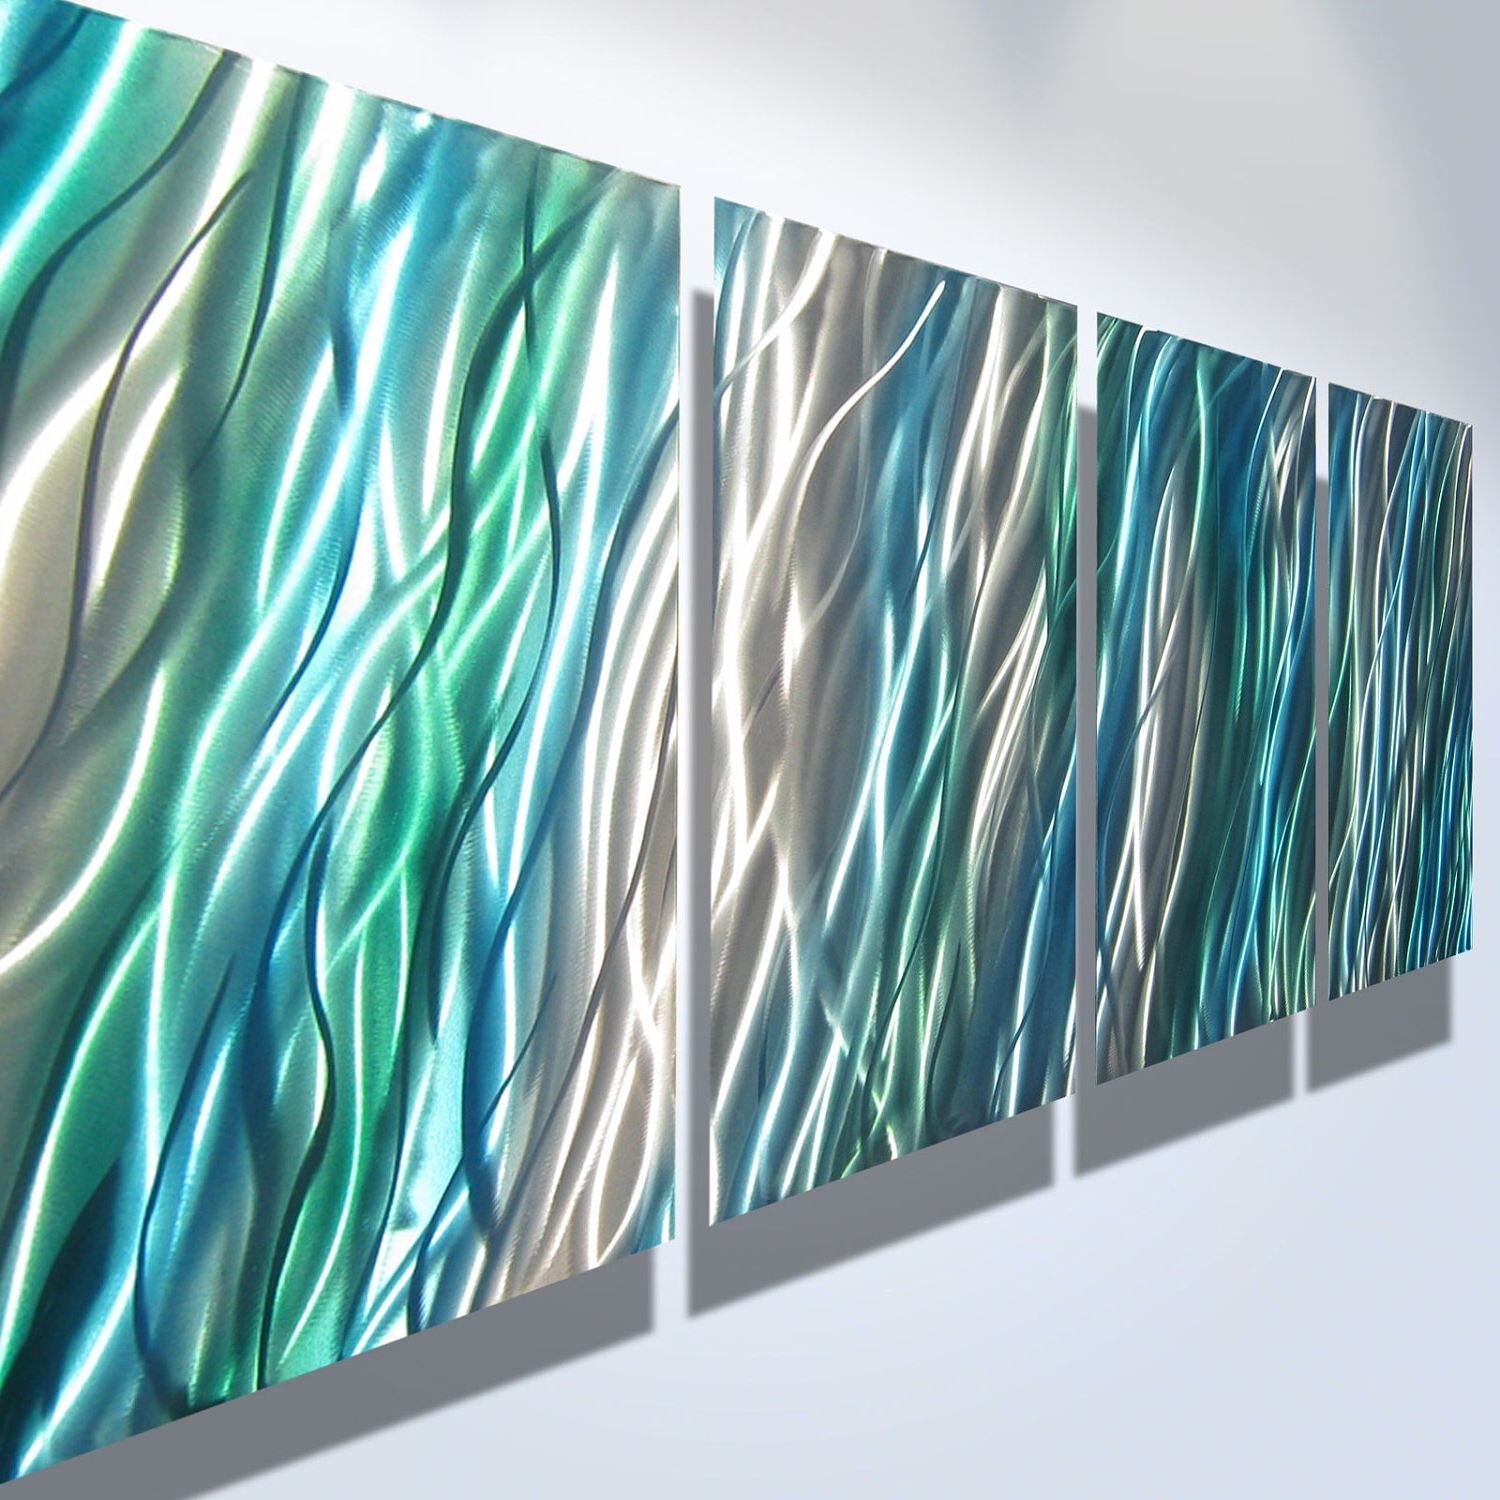 Teal And Green Wall Art Intended For Preferred Metal Wall Art Decor Abstract Contemporary Modern Sculpture (View 10 of 15)